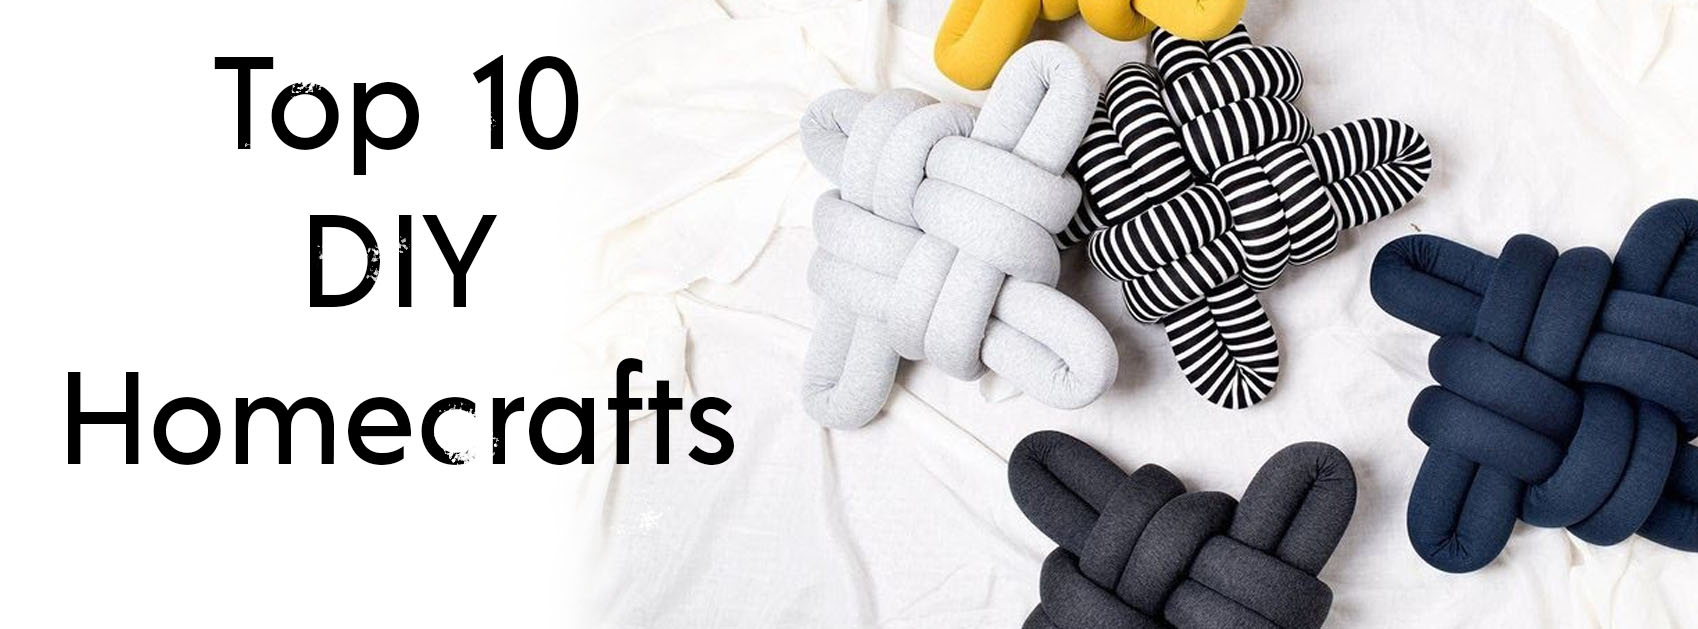 Top 10 homecraft to make for your home